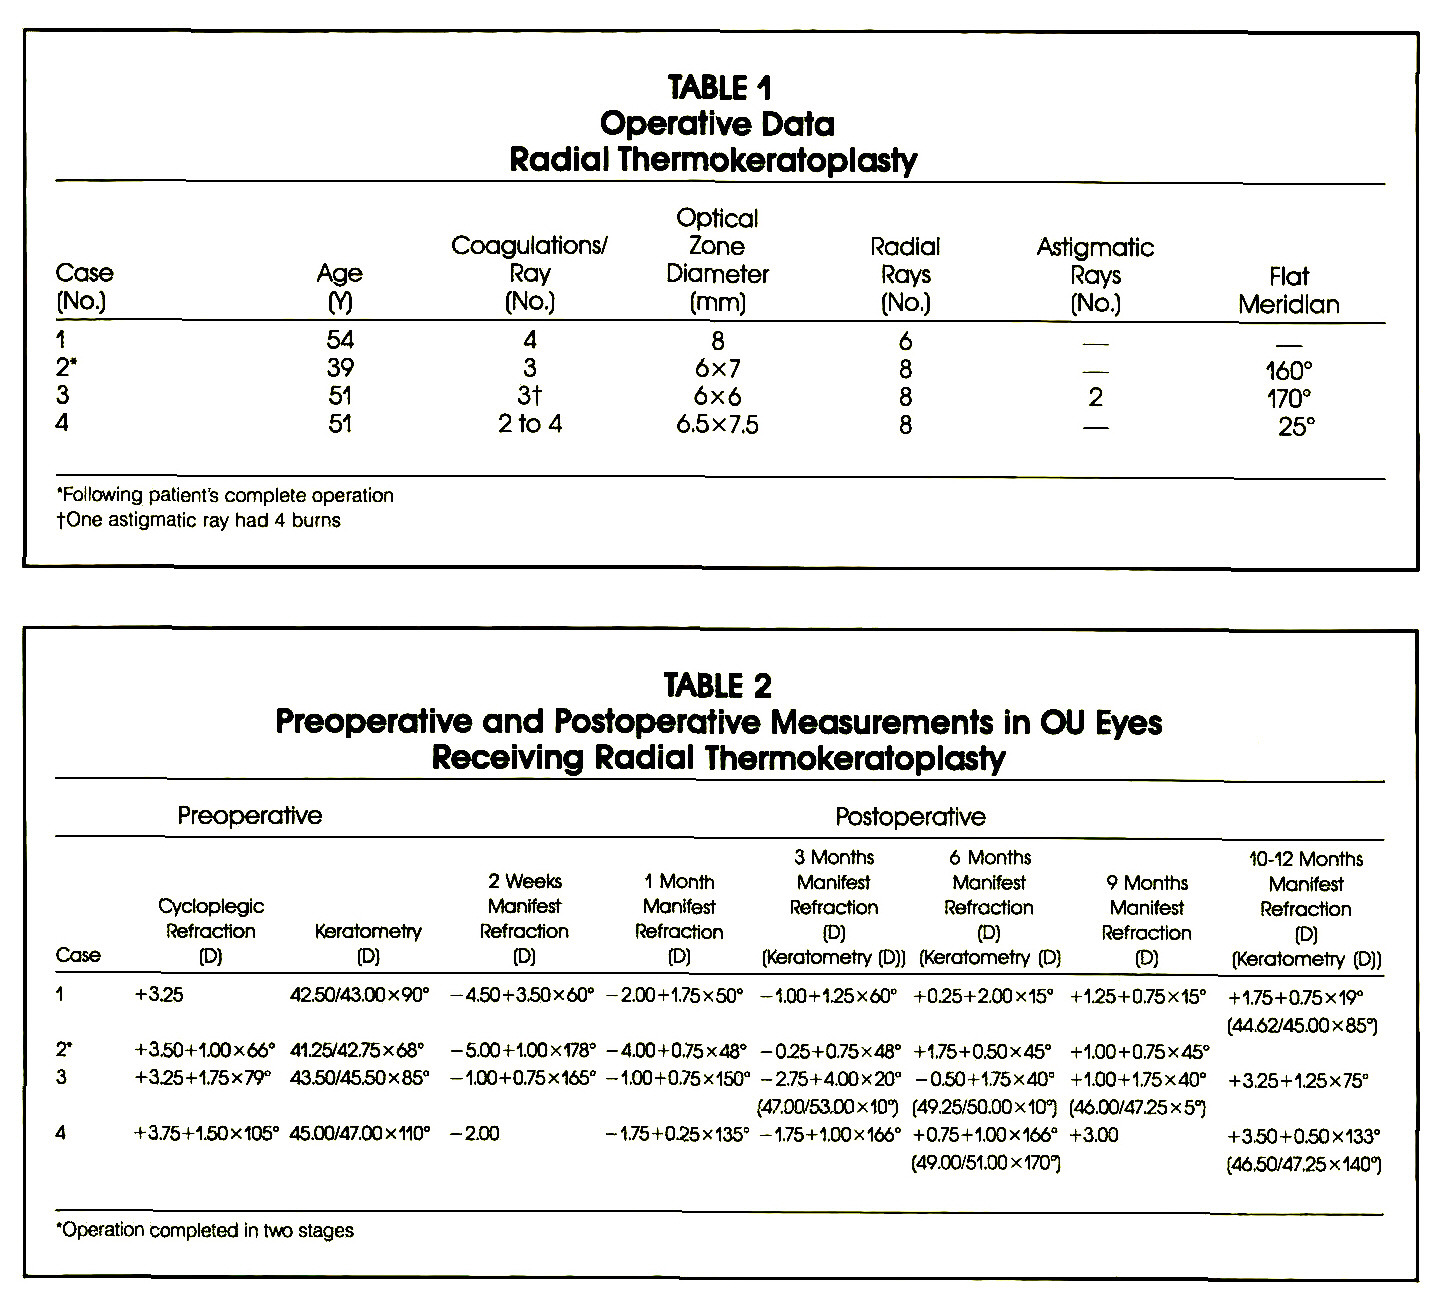 TABLE 1Operative Data Radial ThermokeratoplastyTABLE 2Preoperative and Postoperative Measurements in OU Eyes Receiving Radial Thermokeratopiasty